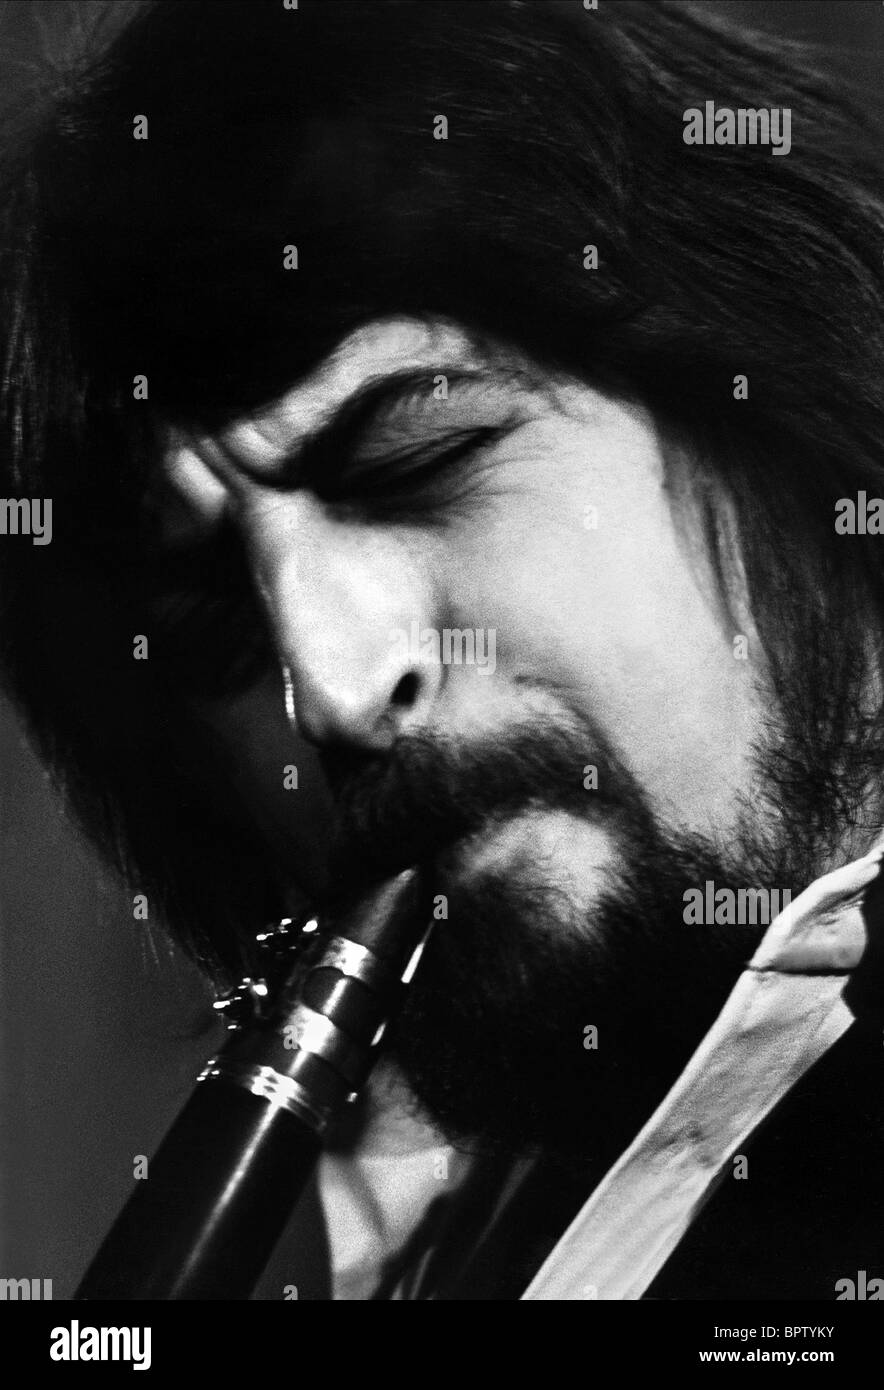 ANDY COOPER MUSICIAN (1978) - Stock Image